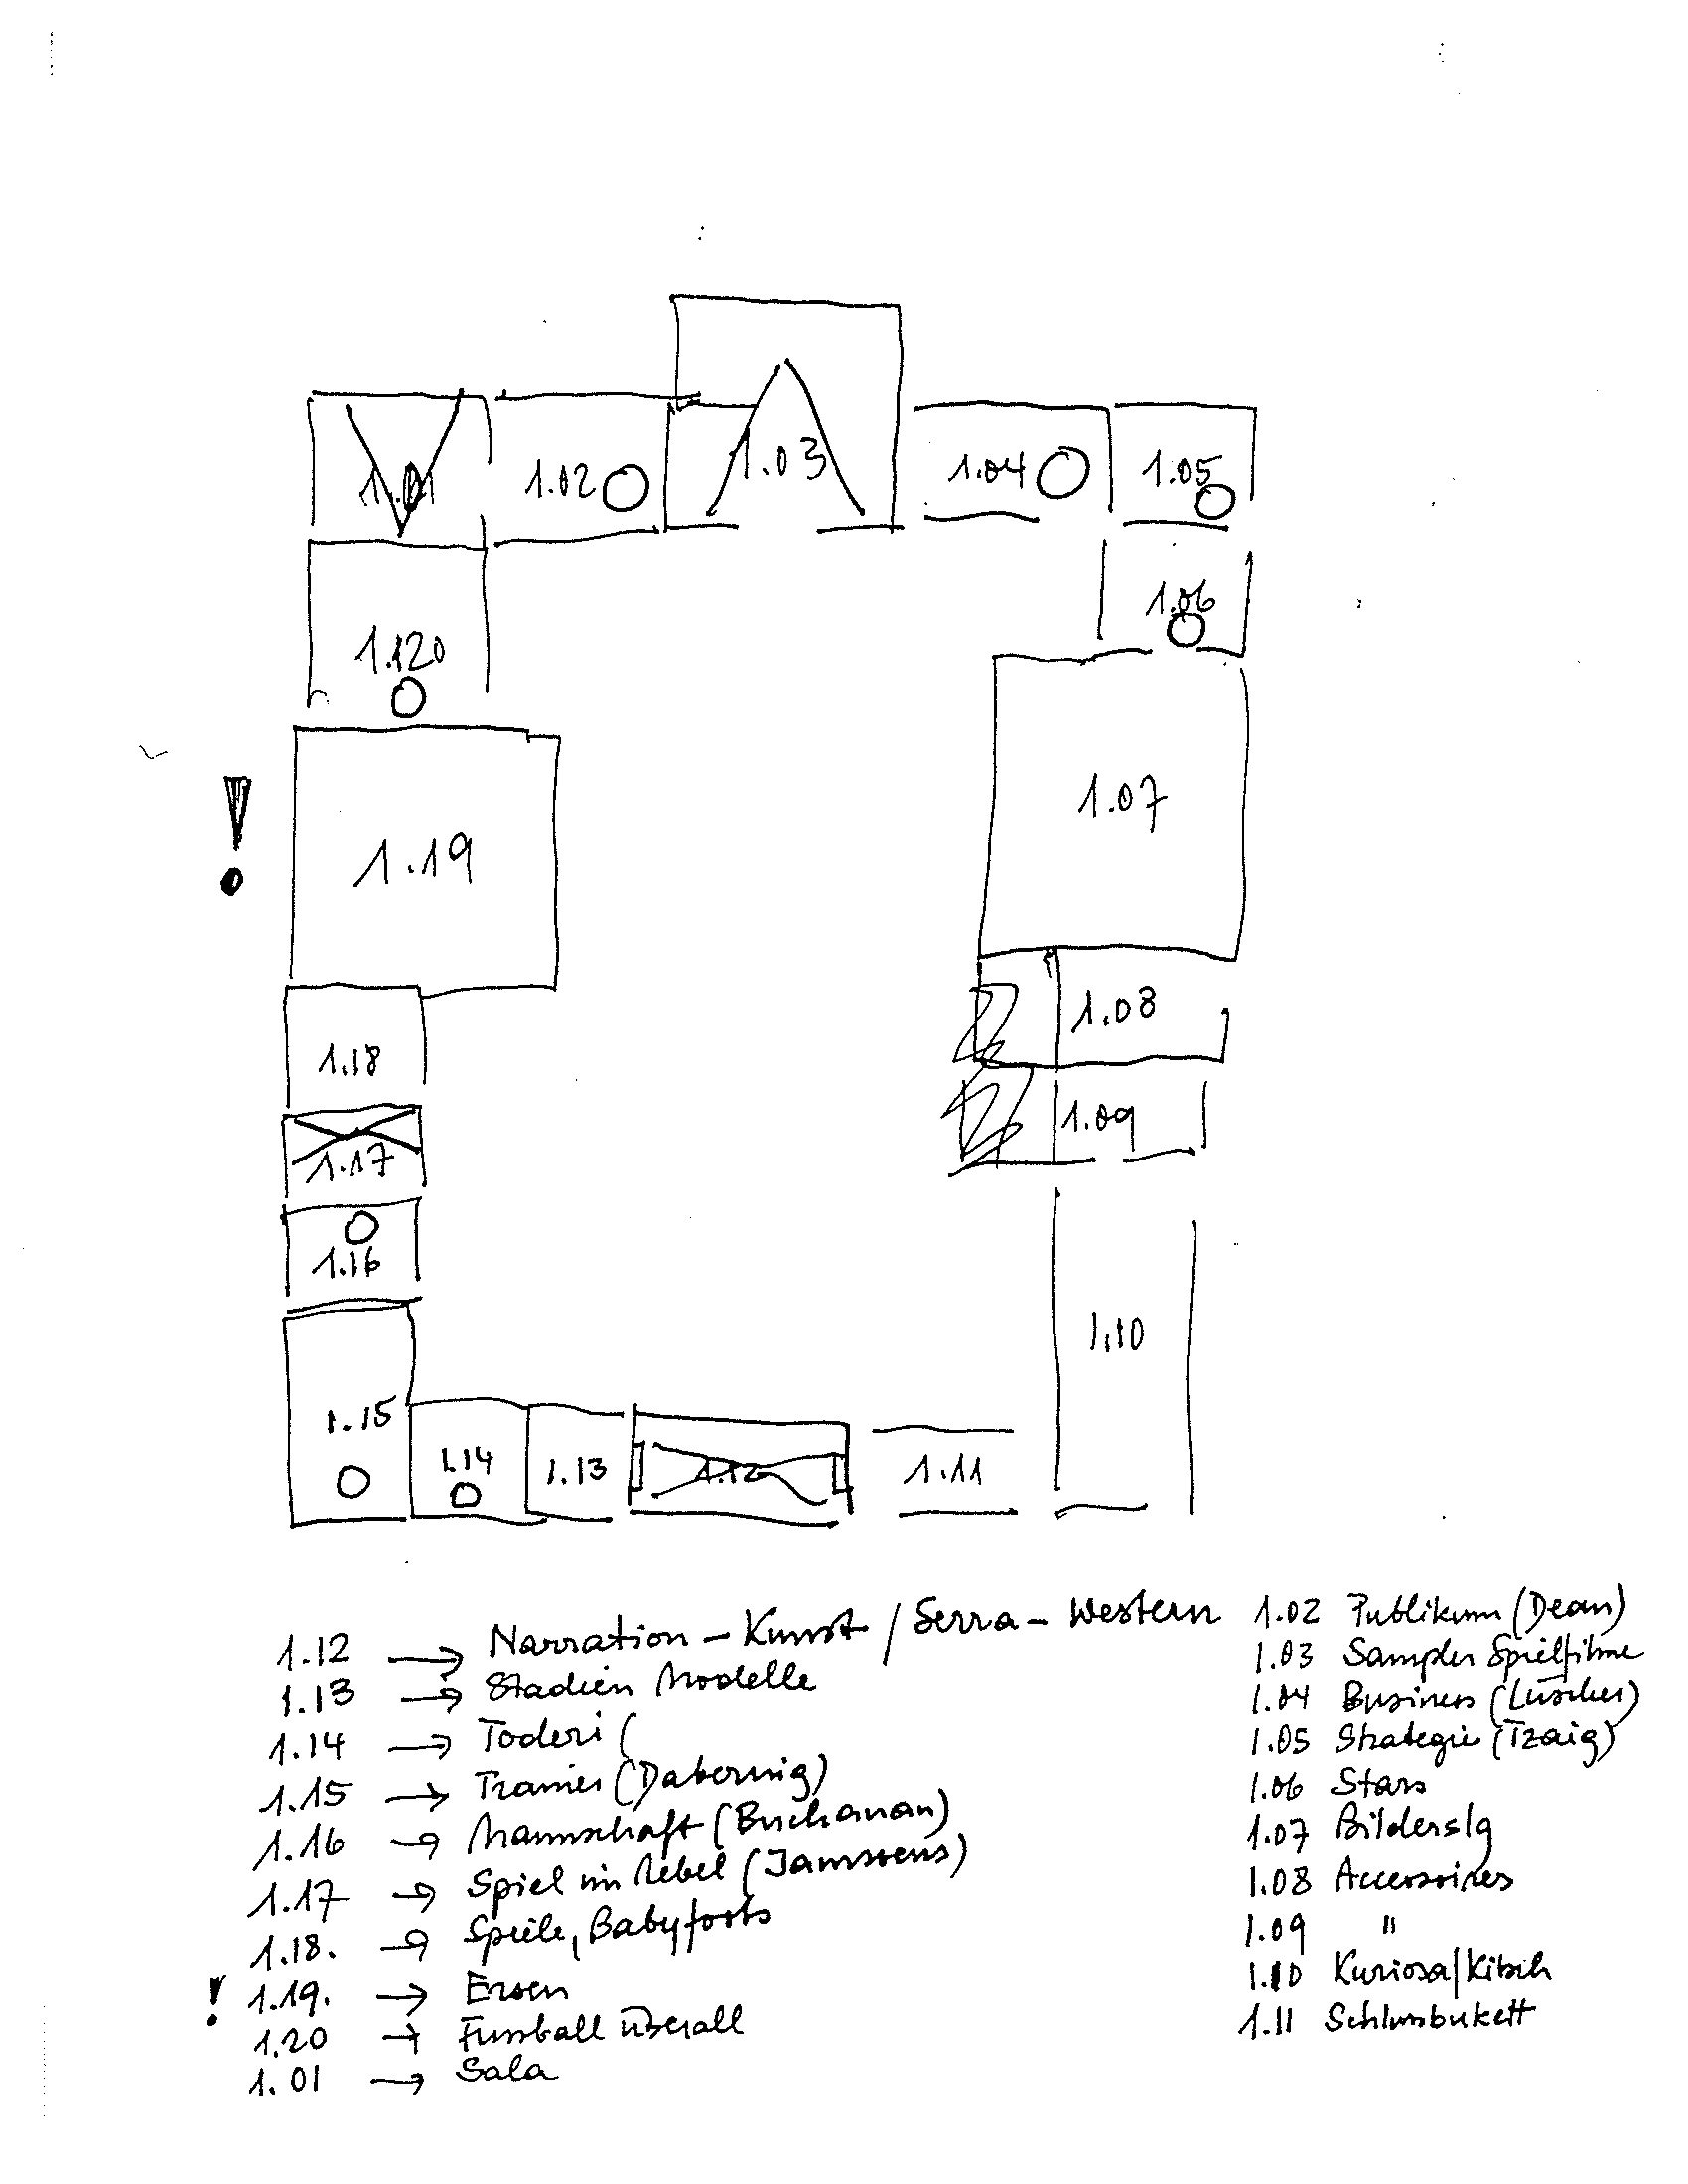 (Click image for full size): Harald Szeemann, hand-drawn floor plan of the Martin-Gropius-Bau, undated (approximately 2004), Getty Research Institute, 2011.M.30